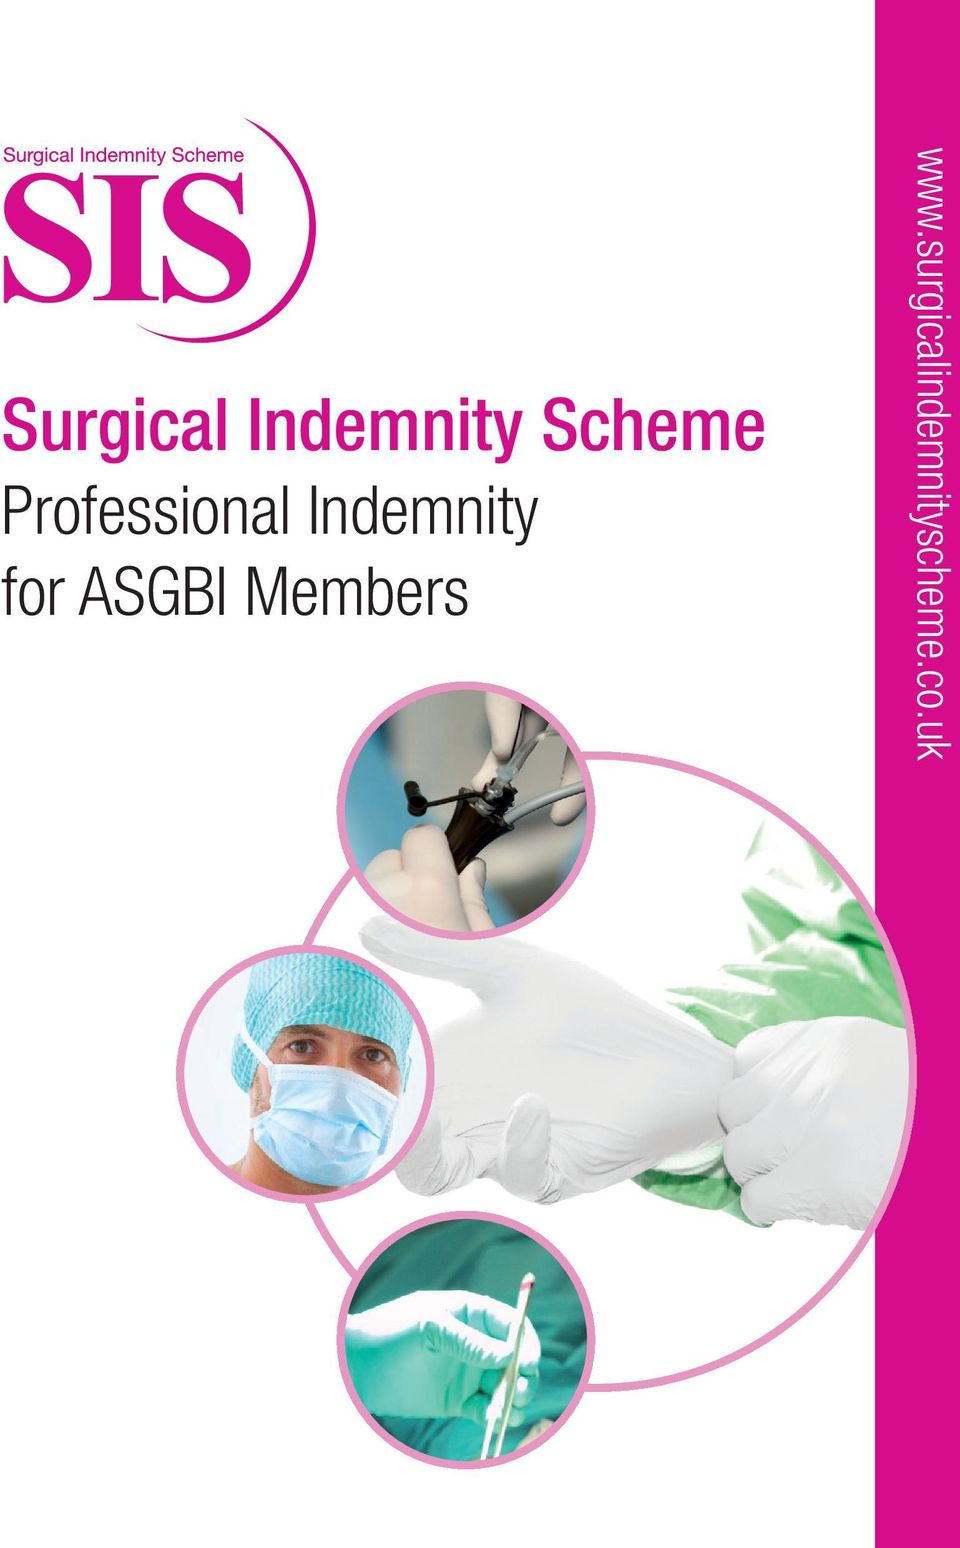 Indemnity for ASGBI